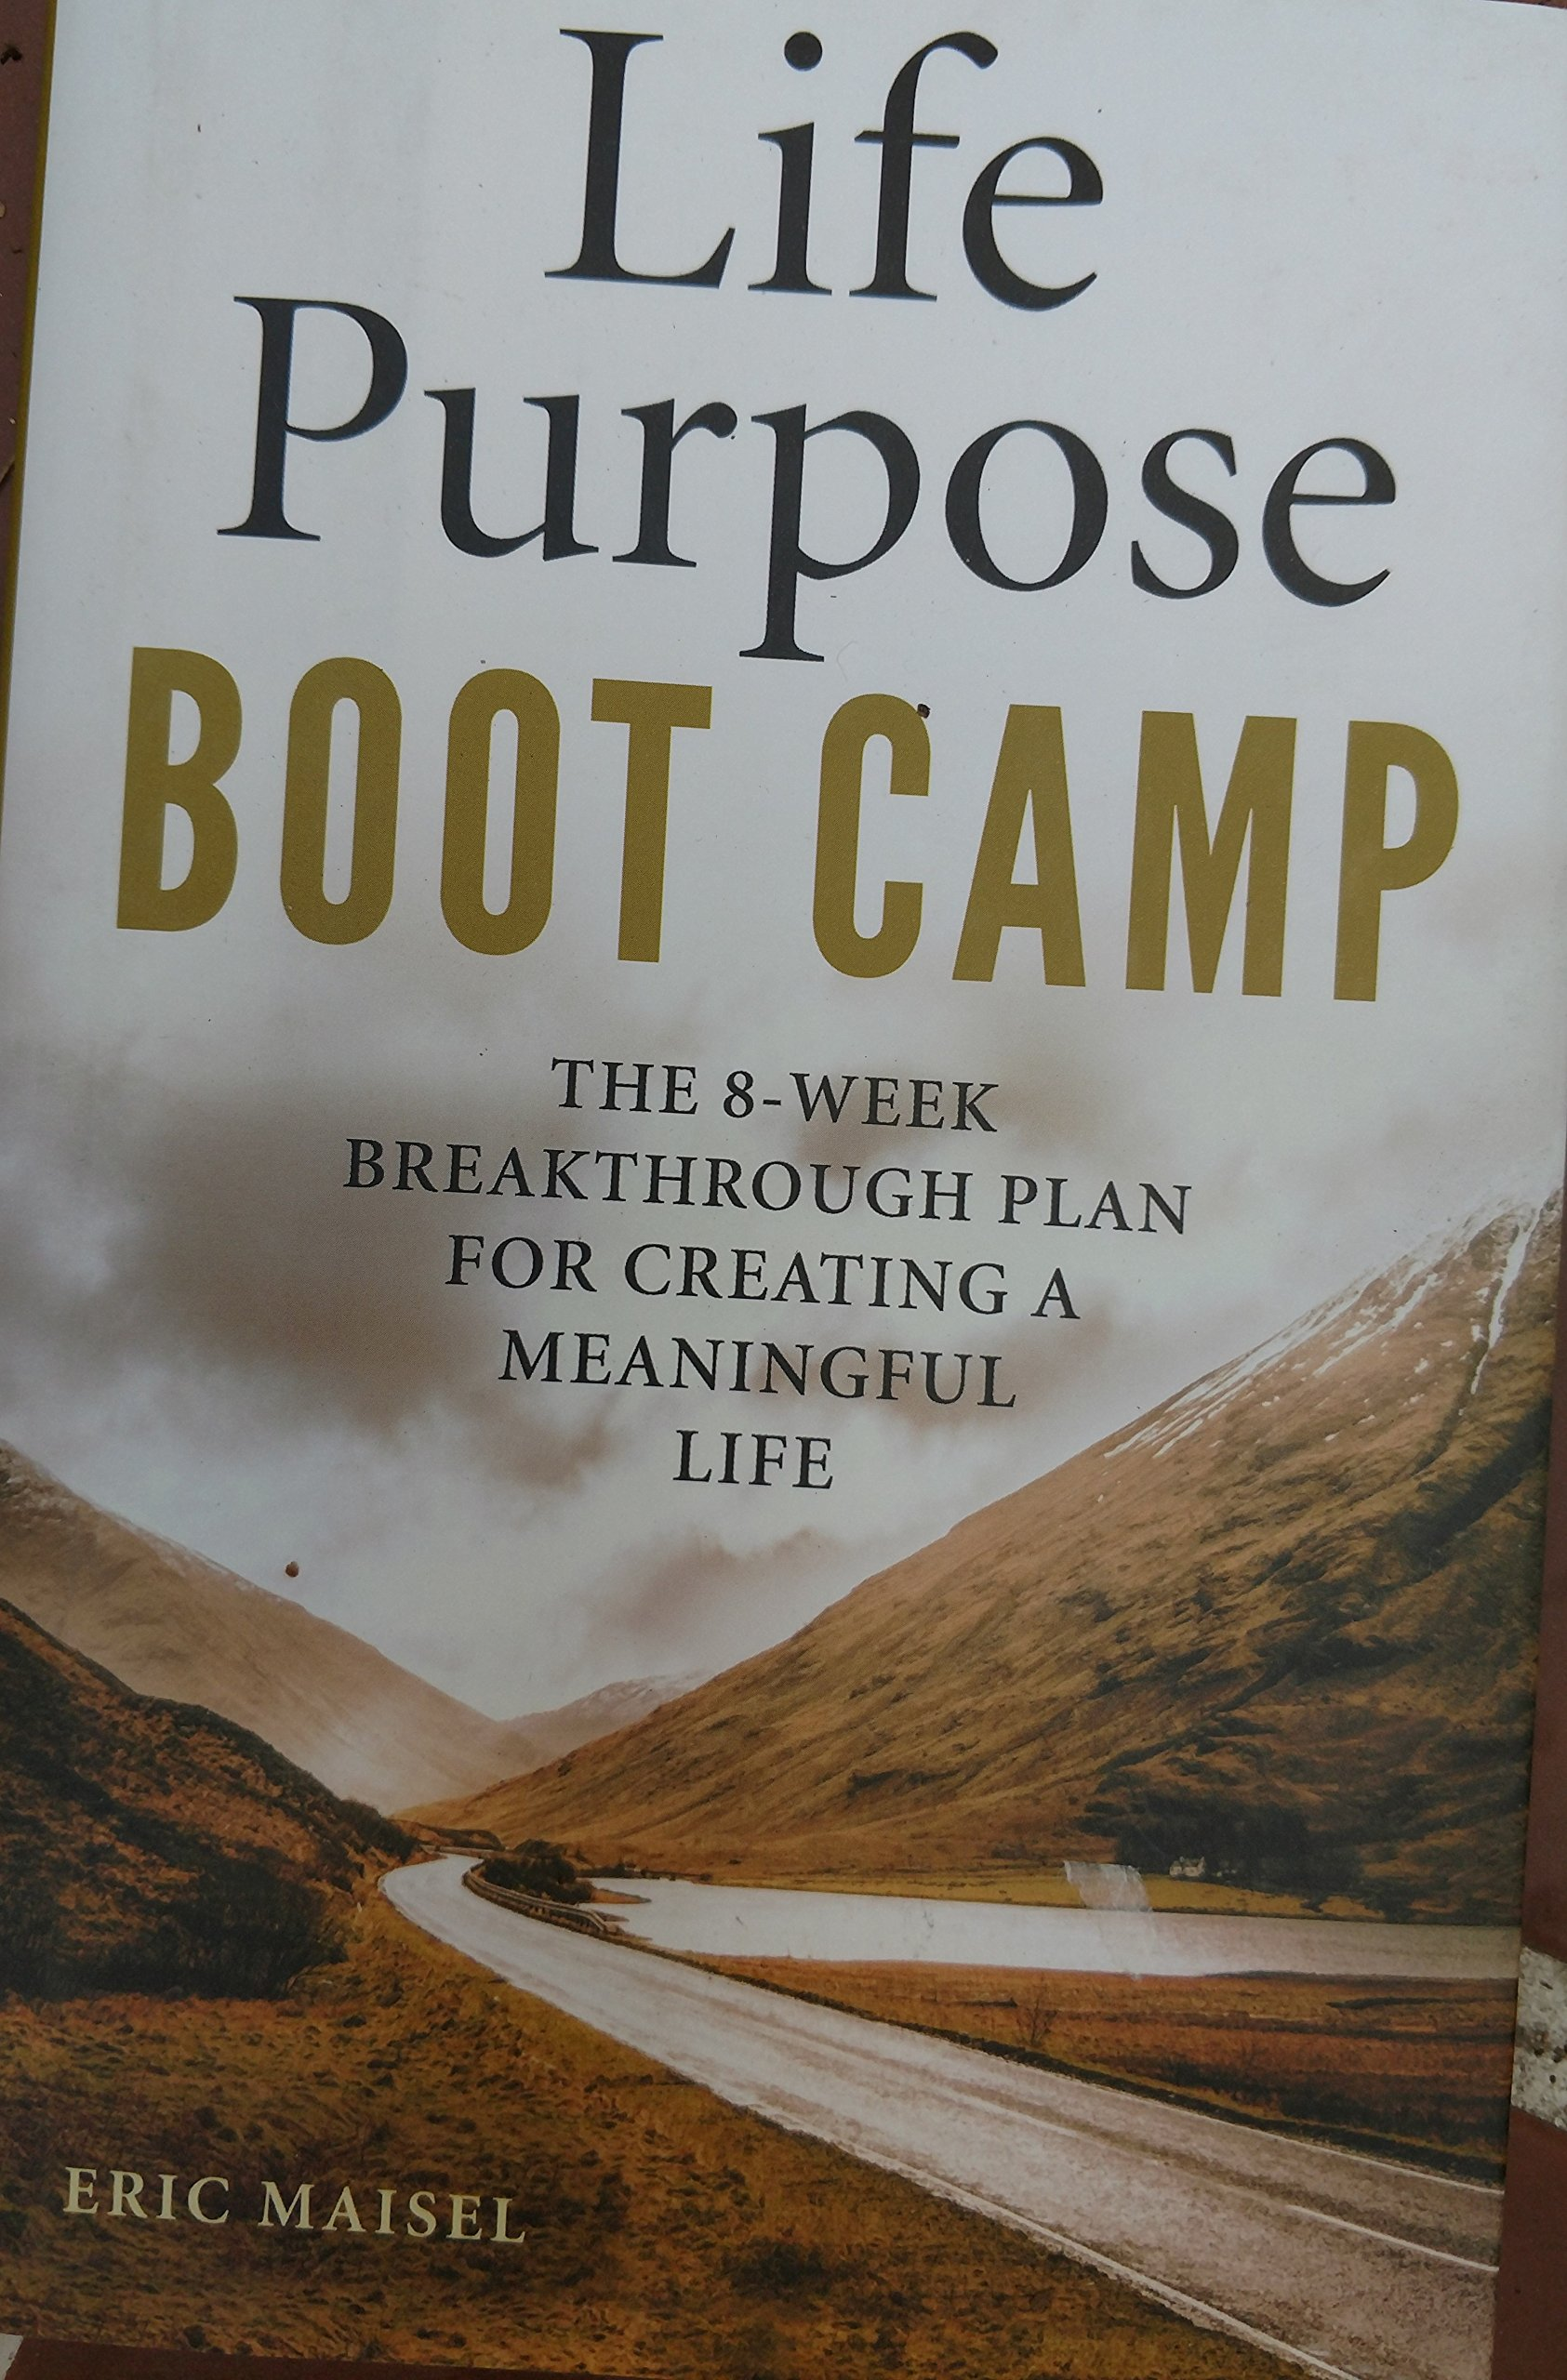 Life Purpose Boot Camp: The 8-Week Breakthrough Plan for Creating a Meaningful Life PDF